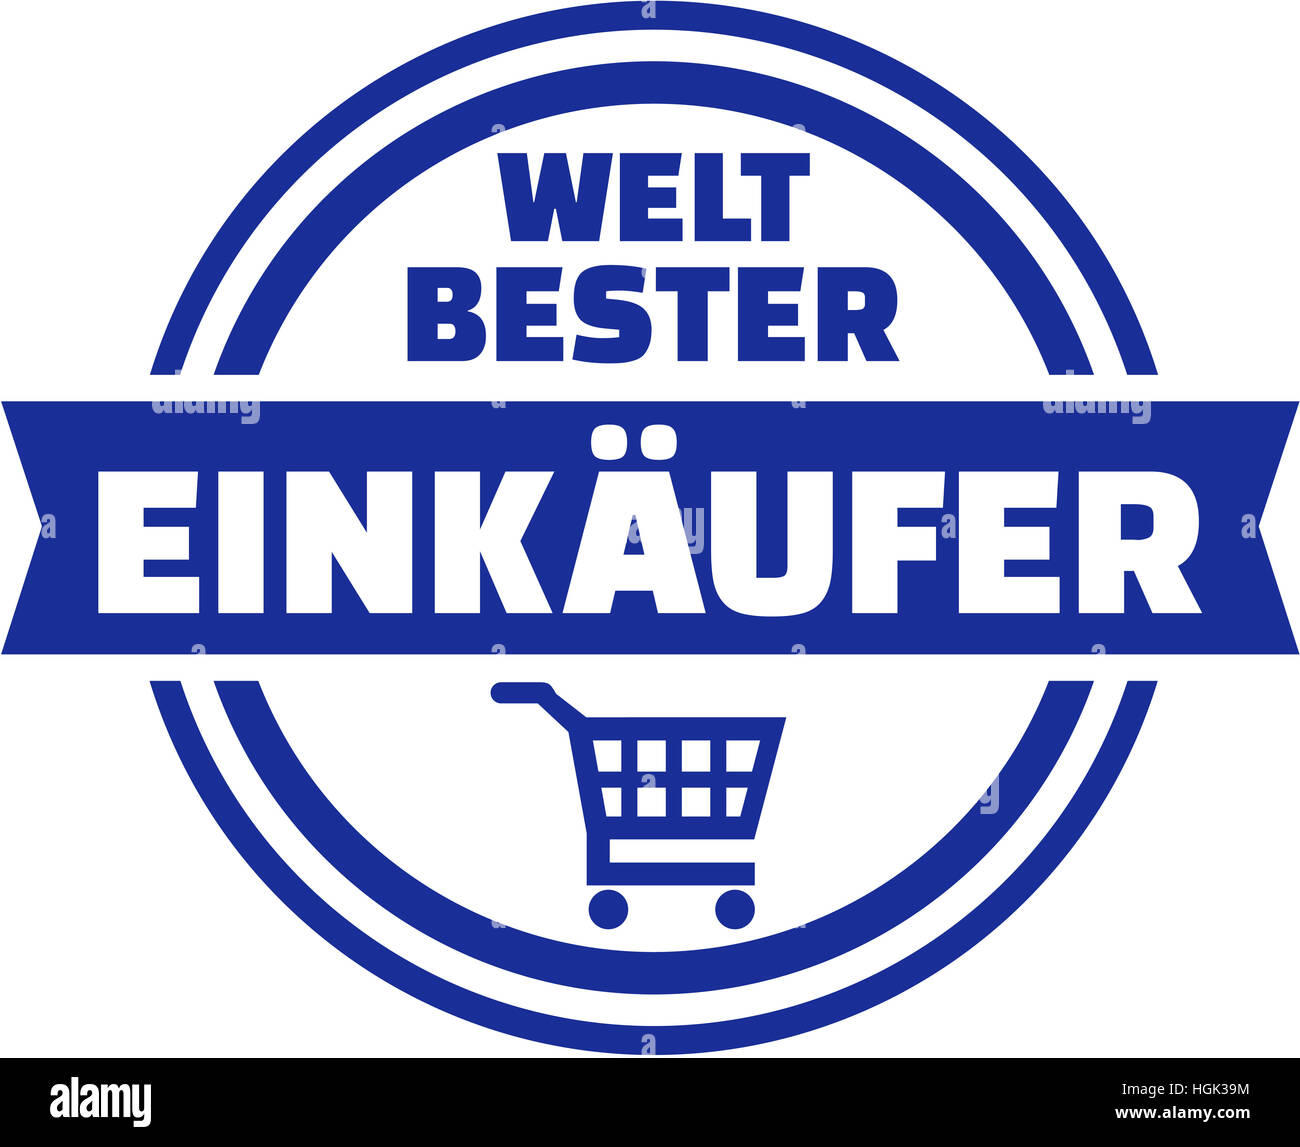 World's best purchaser german button - Stock Image